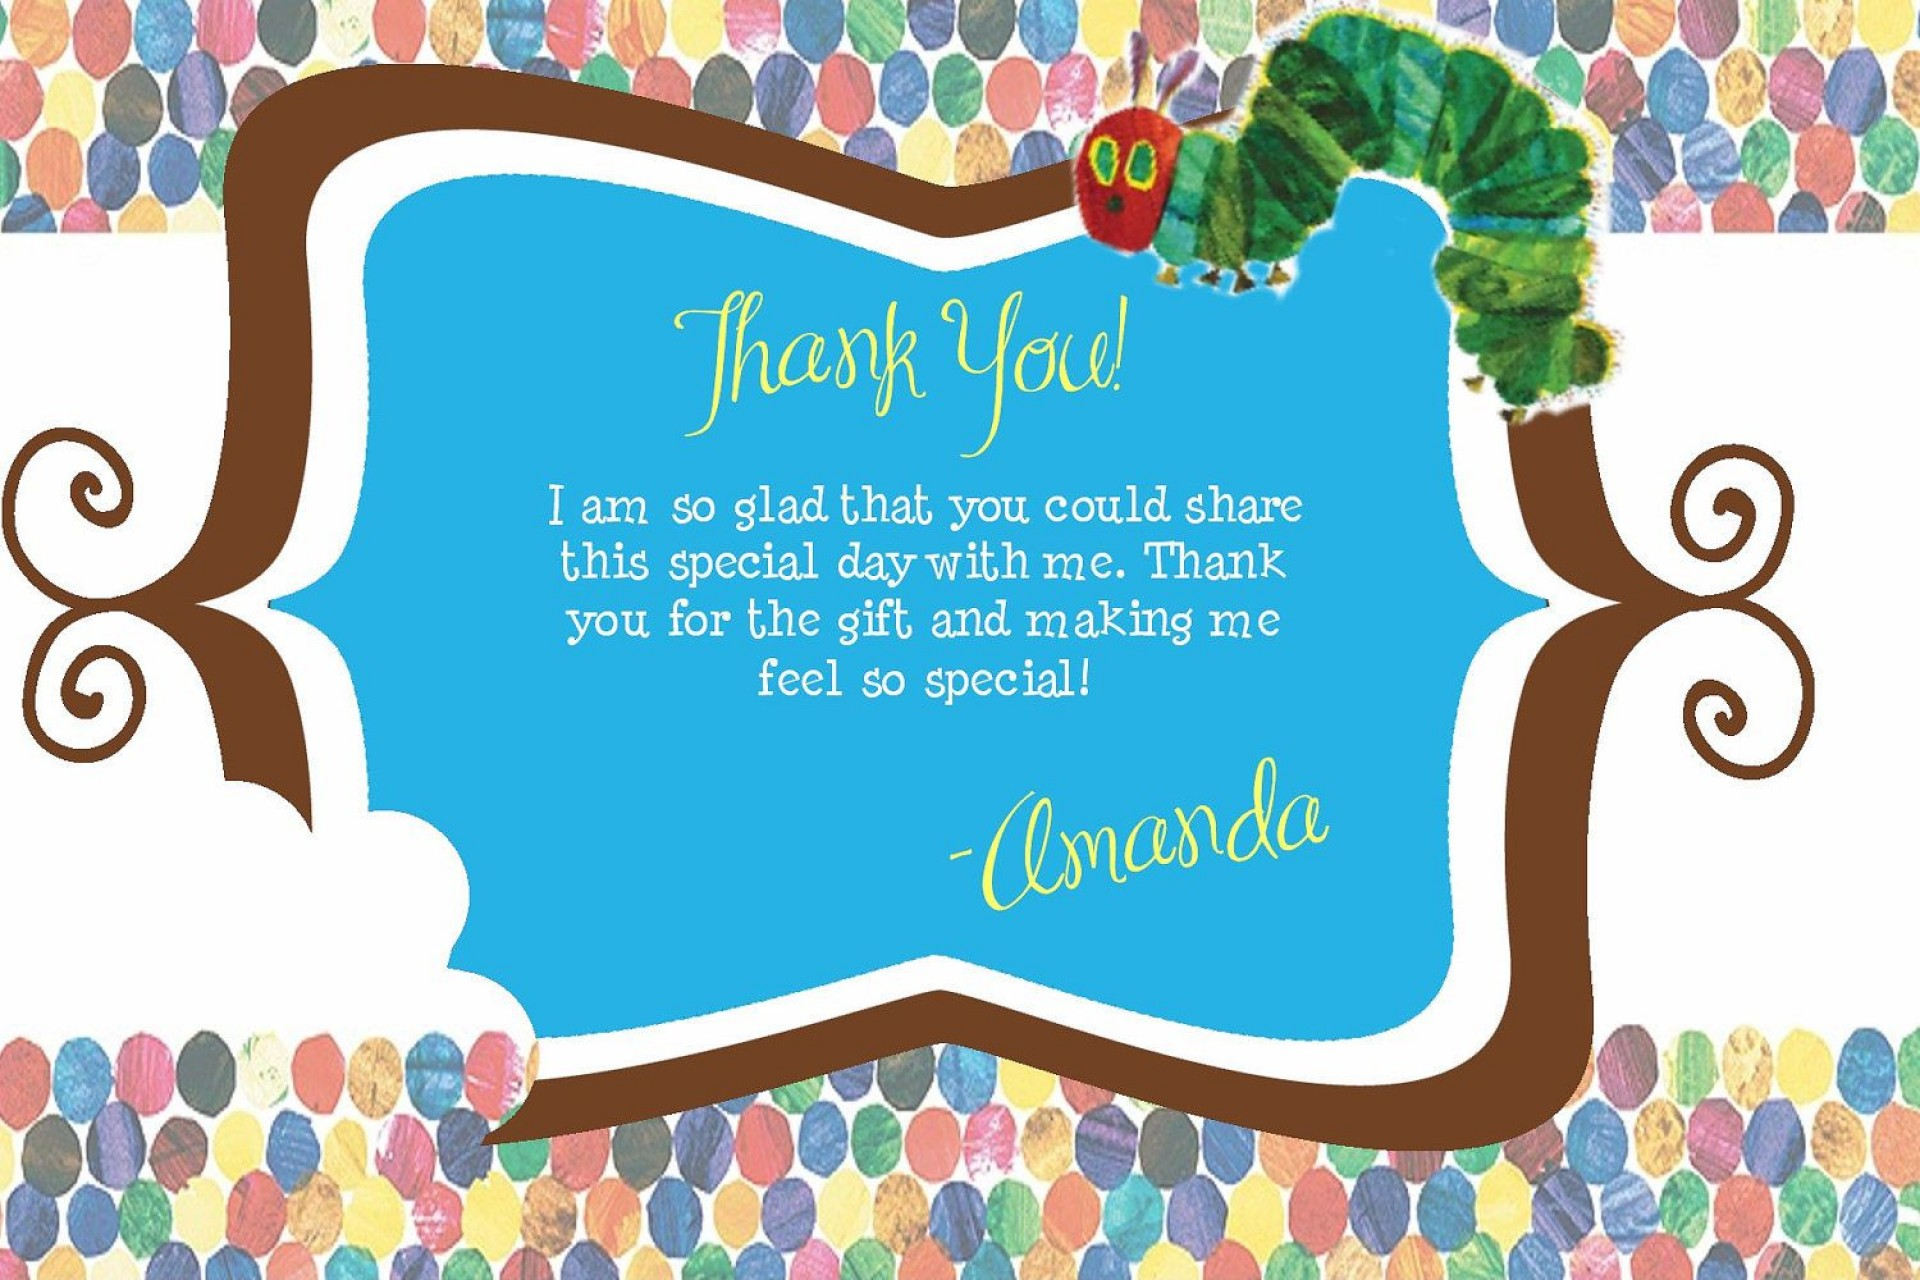 003 Unique Thank You Note Wording For Baby Shower Gift High Definition  Card Sample Example Letter1920